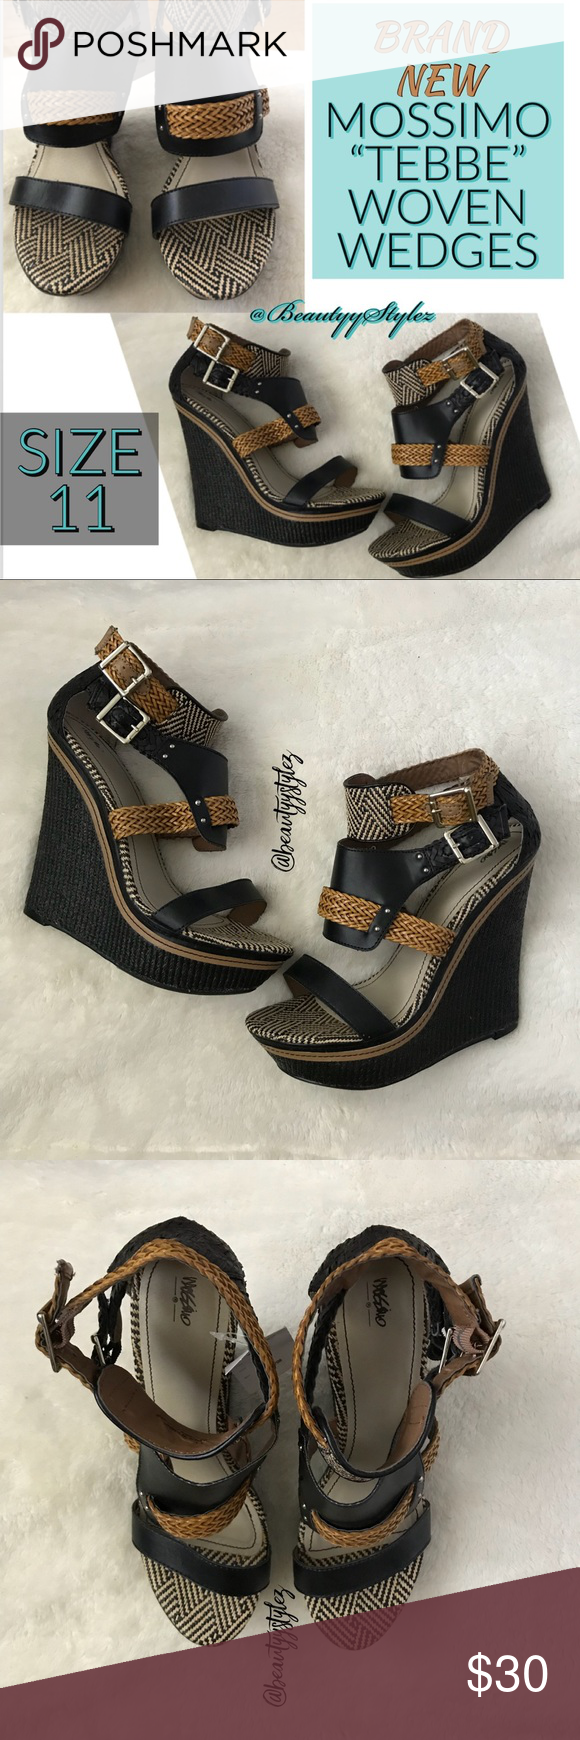 bf9208694 New Mossimo Black Brown TEBBE Woven Wedges Size 11 BRAND NEW WITH TAGS‼️